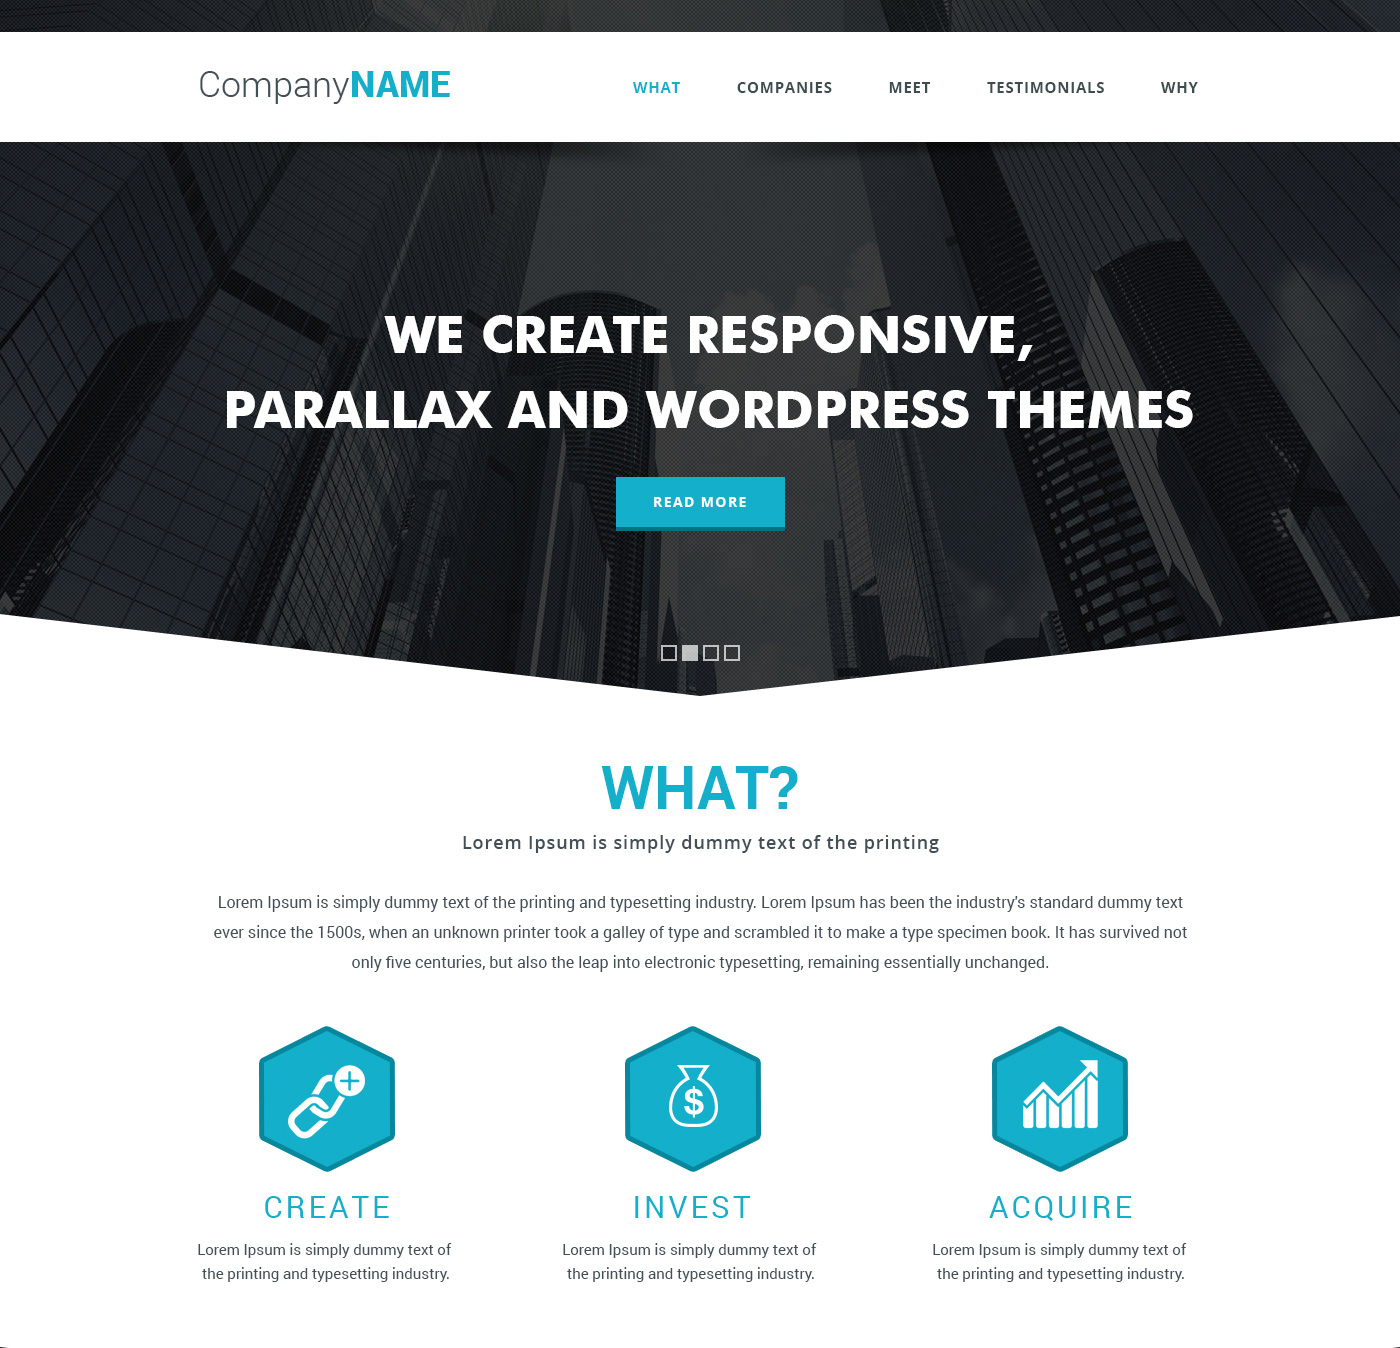 Simple Parallax Website Template Free PSD at DownloadFreePSD.com